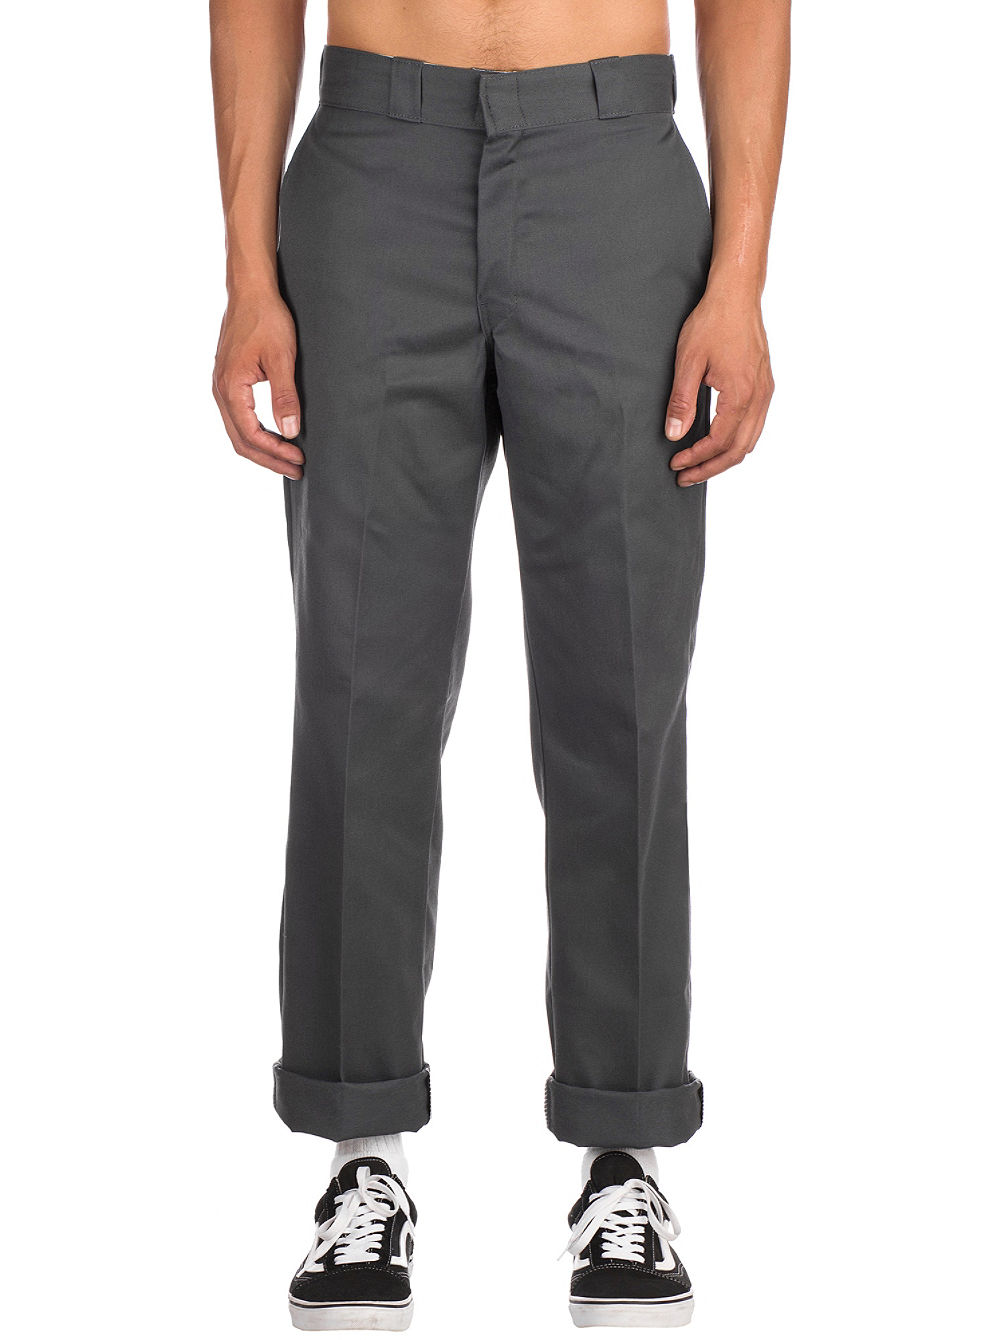 Original Fit Straight Leg Work Pantalon